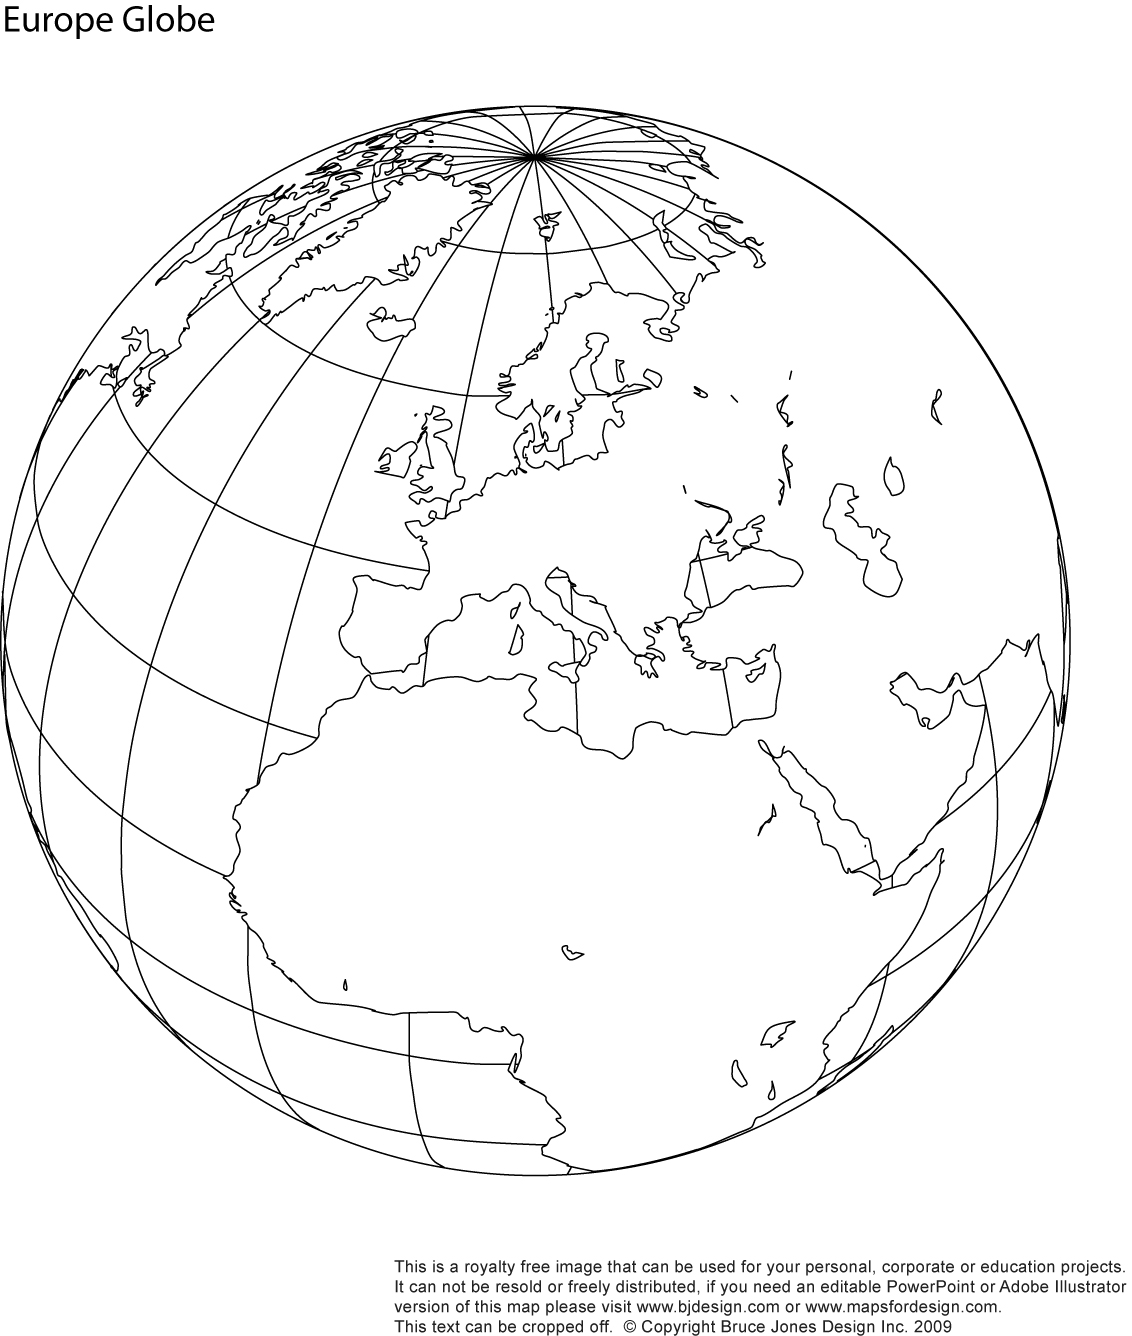 Attractive World Globe Europe Map, Printable Blank, Royalty Free, Jpg